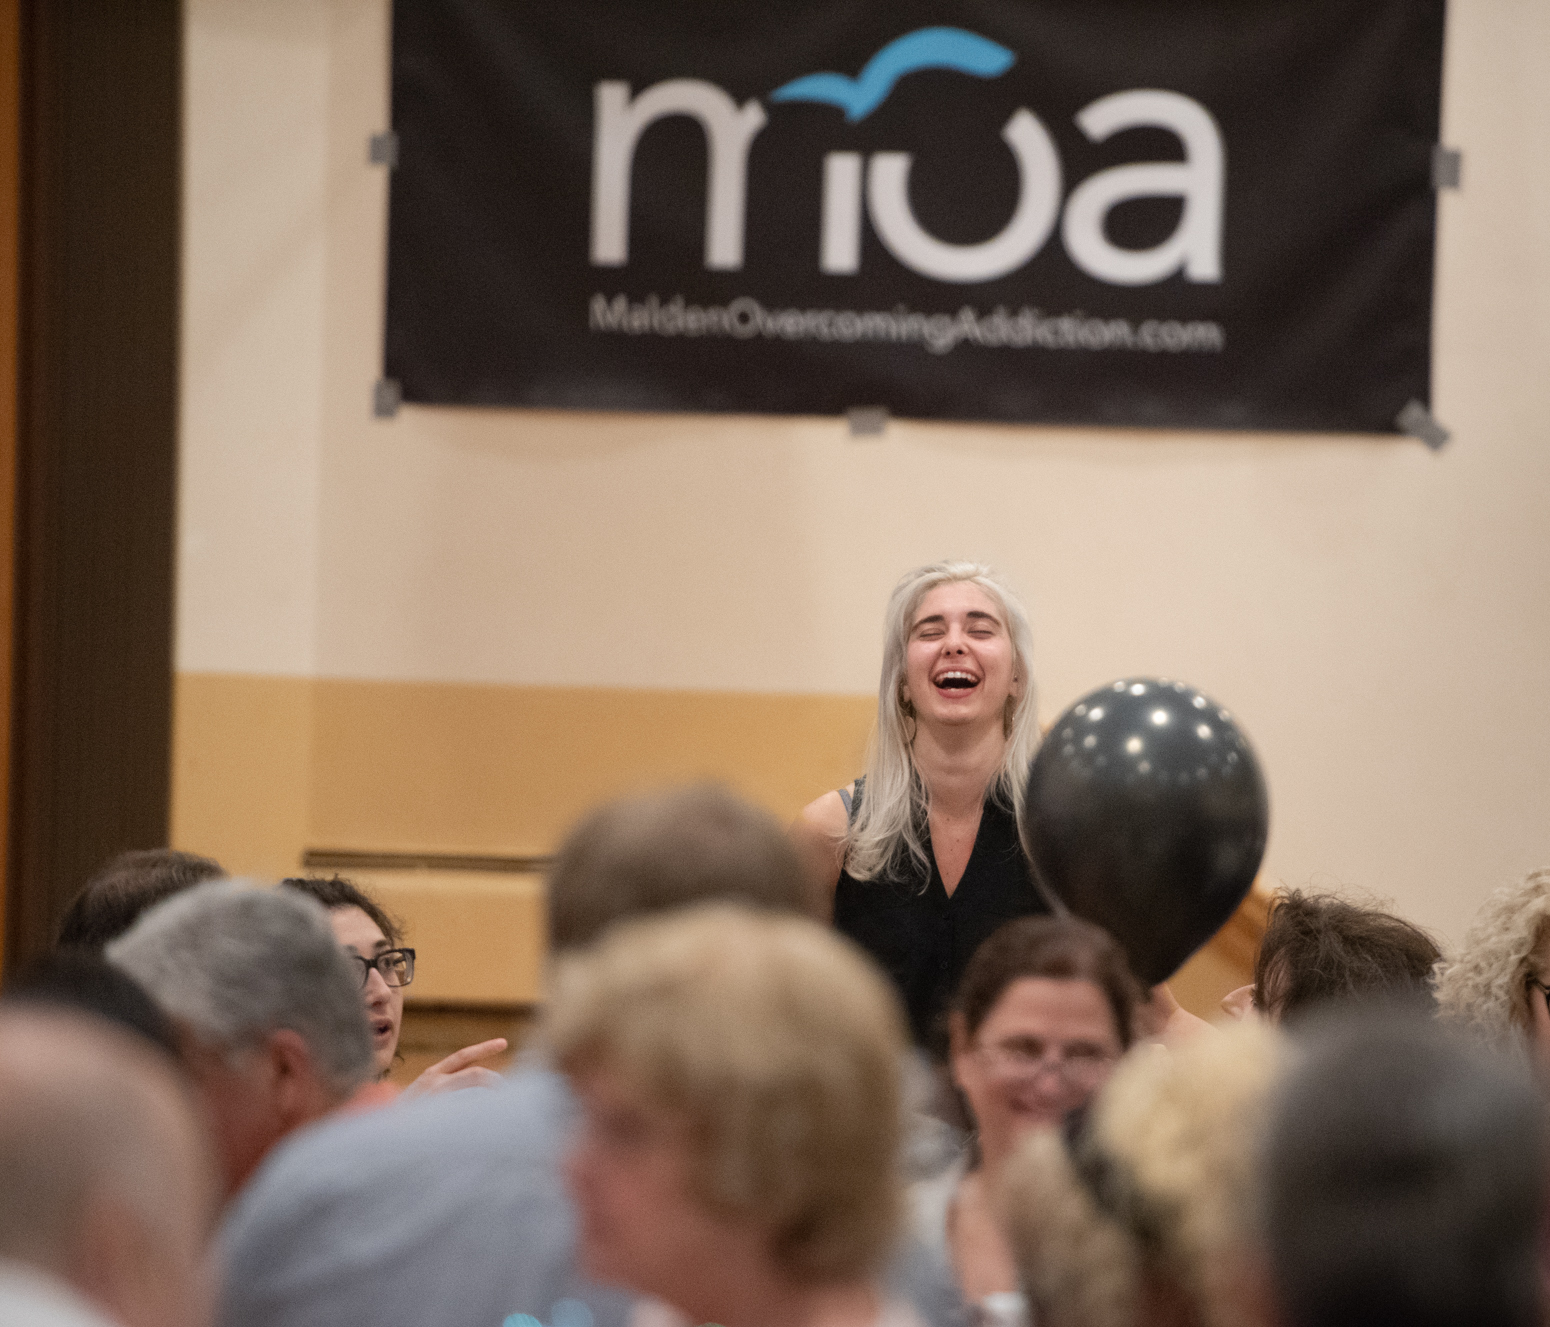 2nd-annual-togetherwecan-moa-comedy-night-fundraiser_40084800320_o.jpg